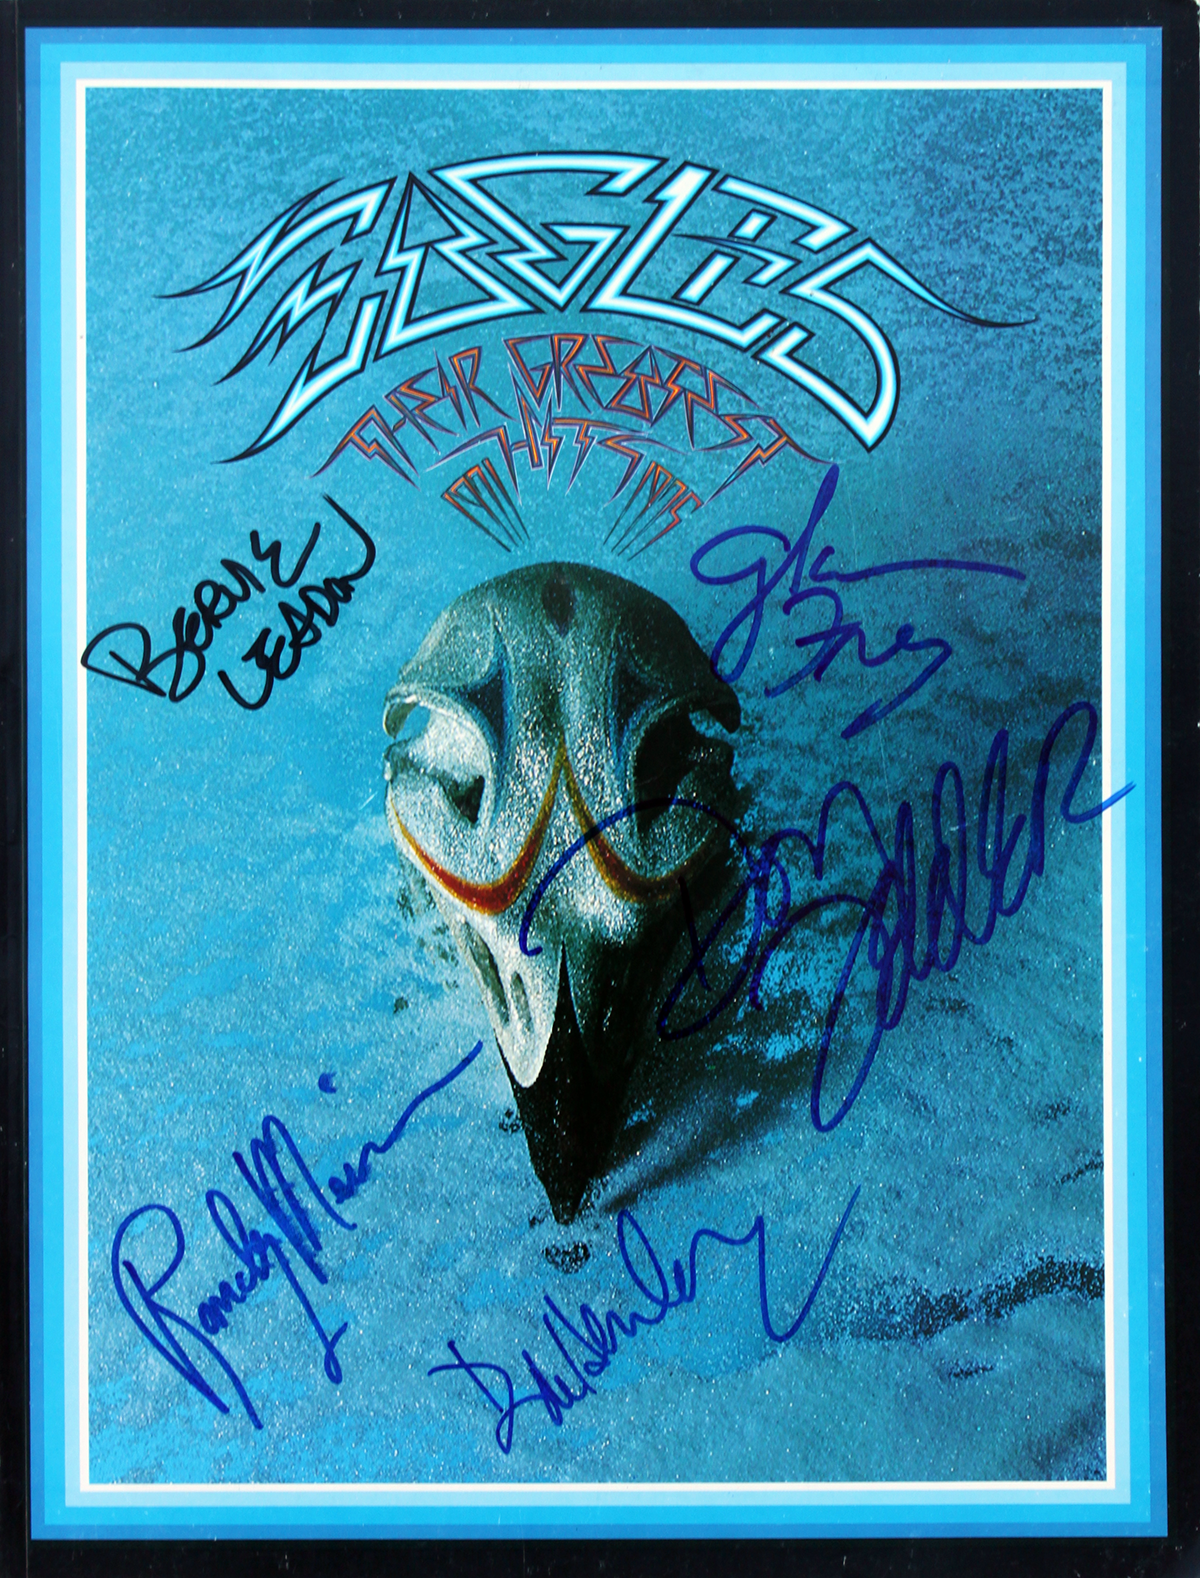 Eagles Songbook - Their Greatest Hits